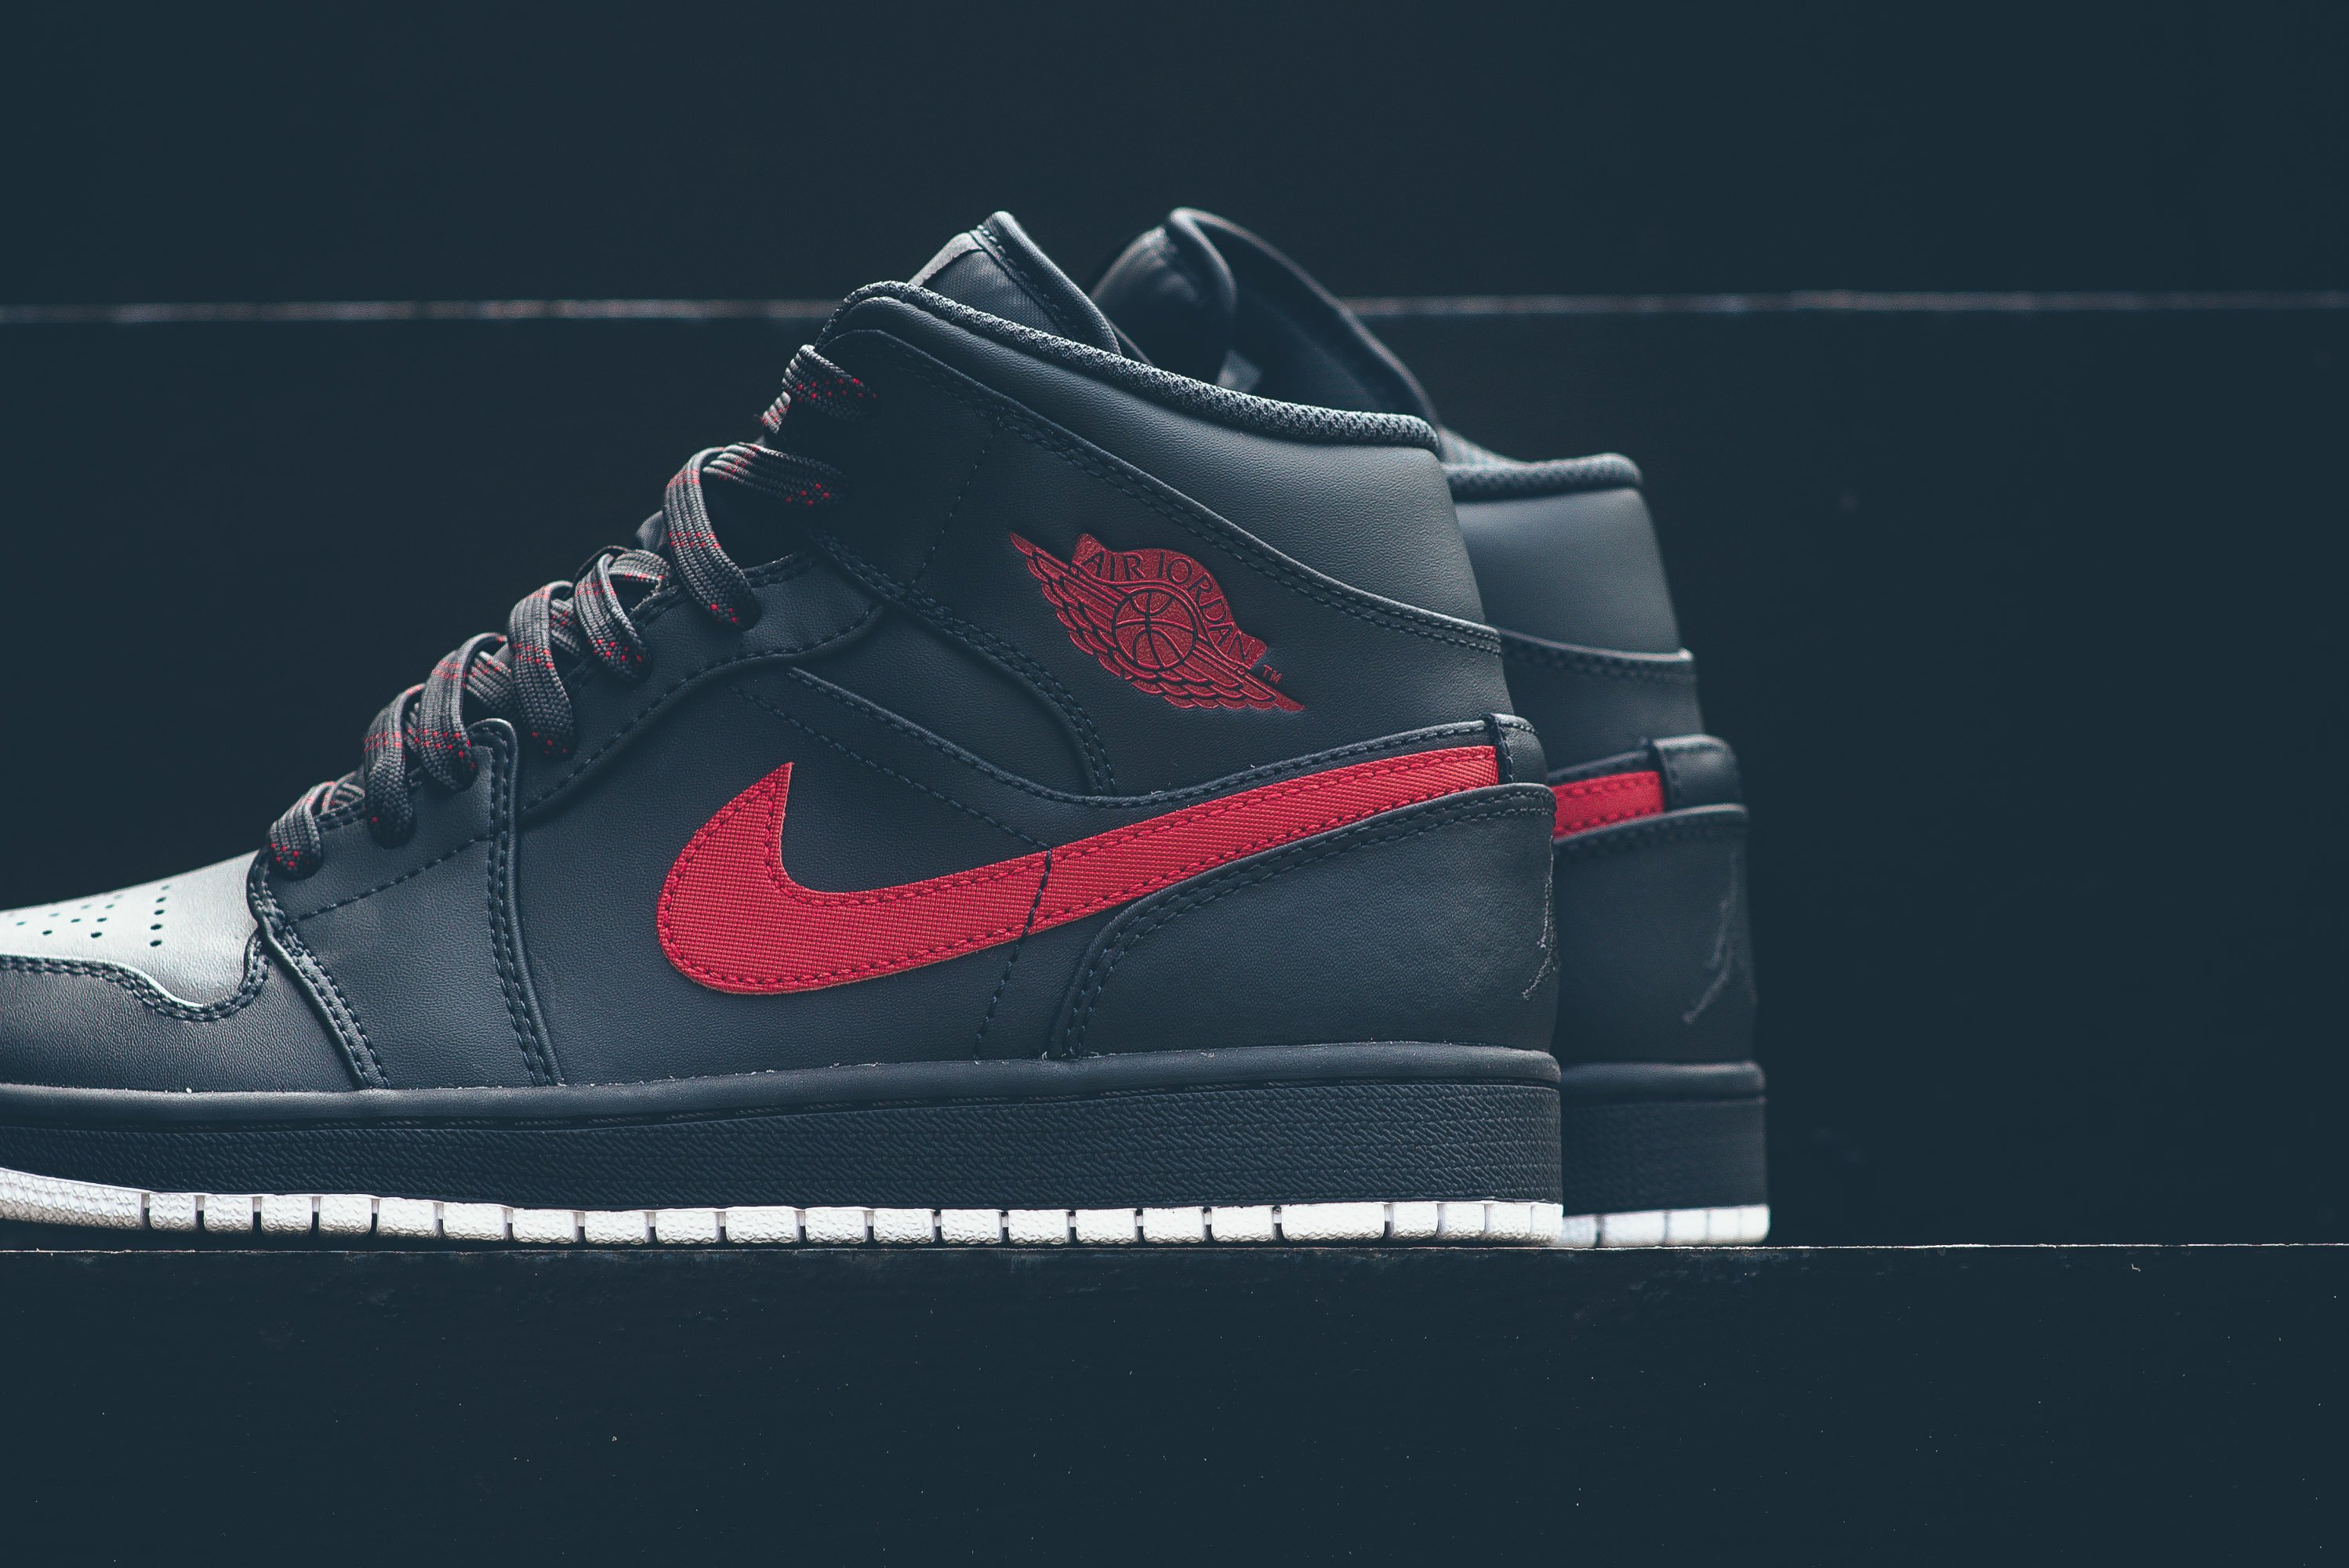 fe70d0065fd7 Air Jordan 1 Mid -Anthracite   Gym Red-White - Air 23 - Air Jordan ...